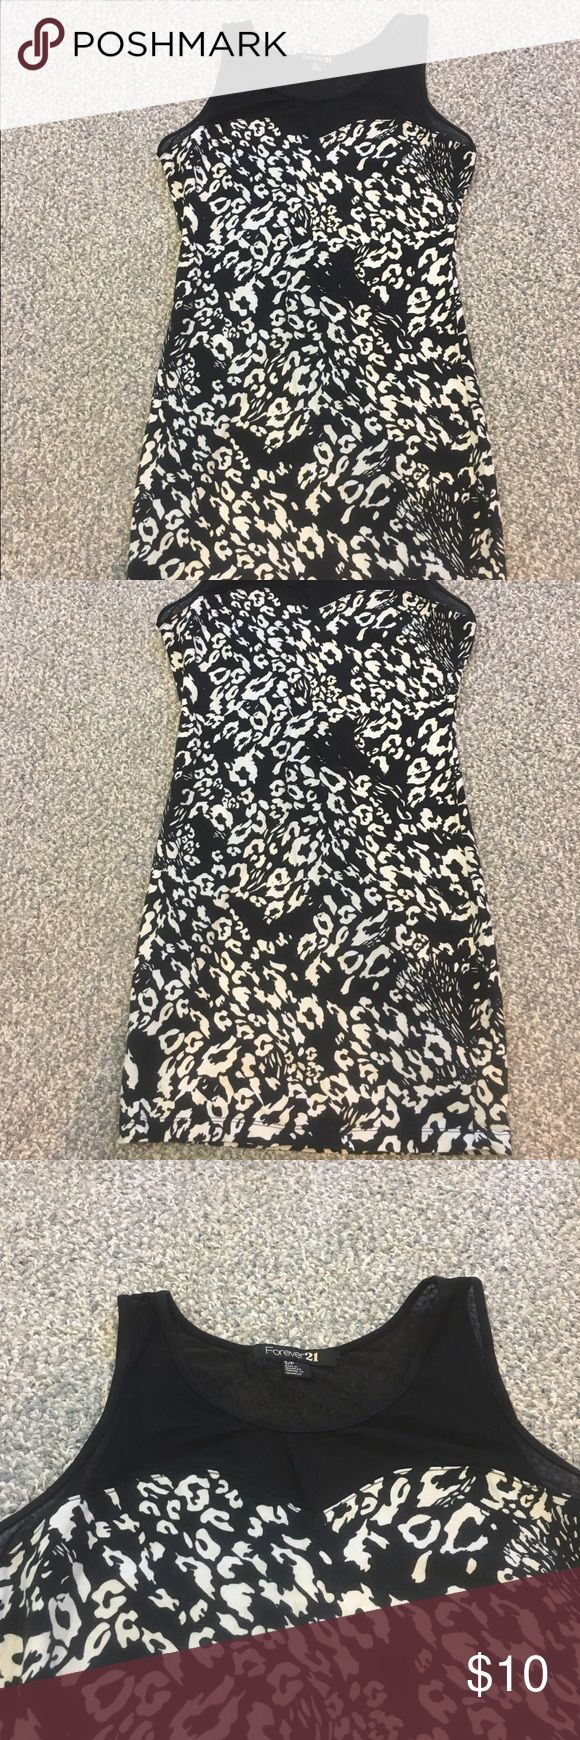 F21 bodycon cheetah print dress Bodycon dress with black and white cheetah print, black mesh at upper chest and neck. Size small. Worn once! Dresses